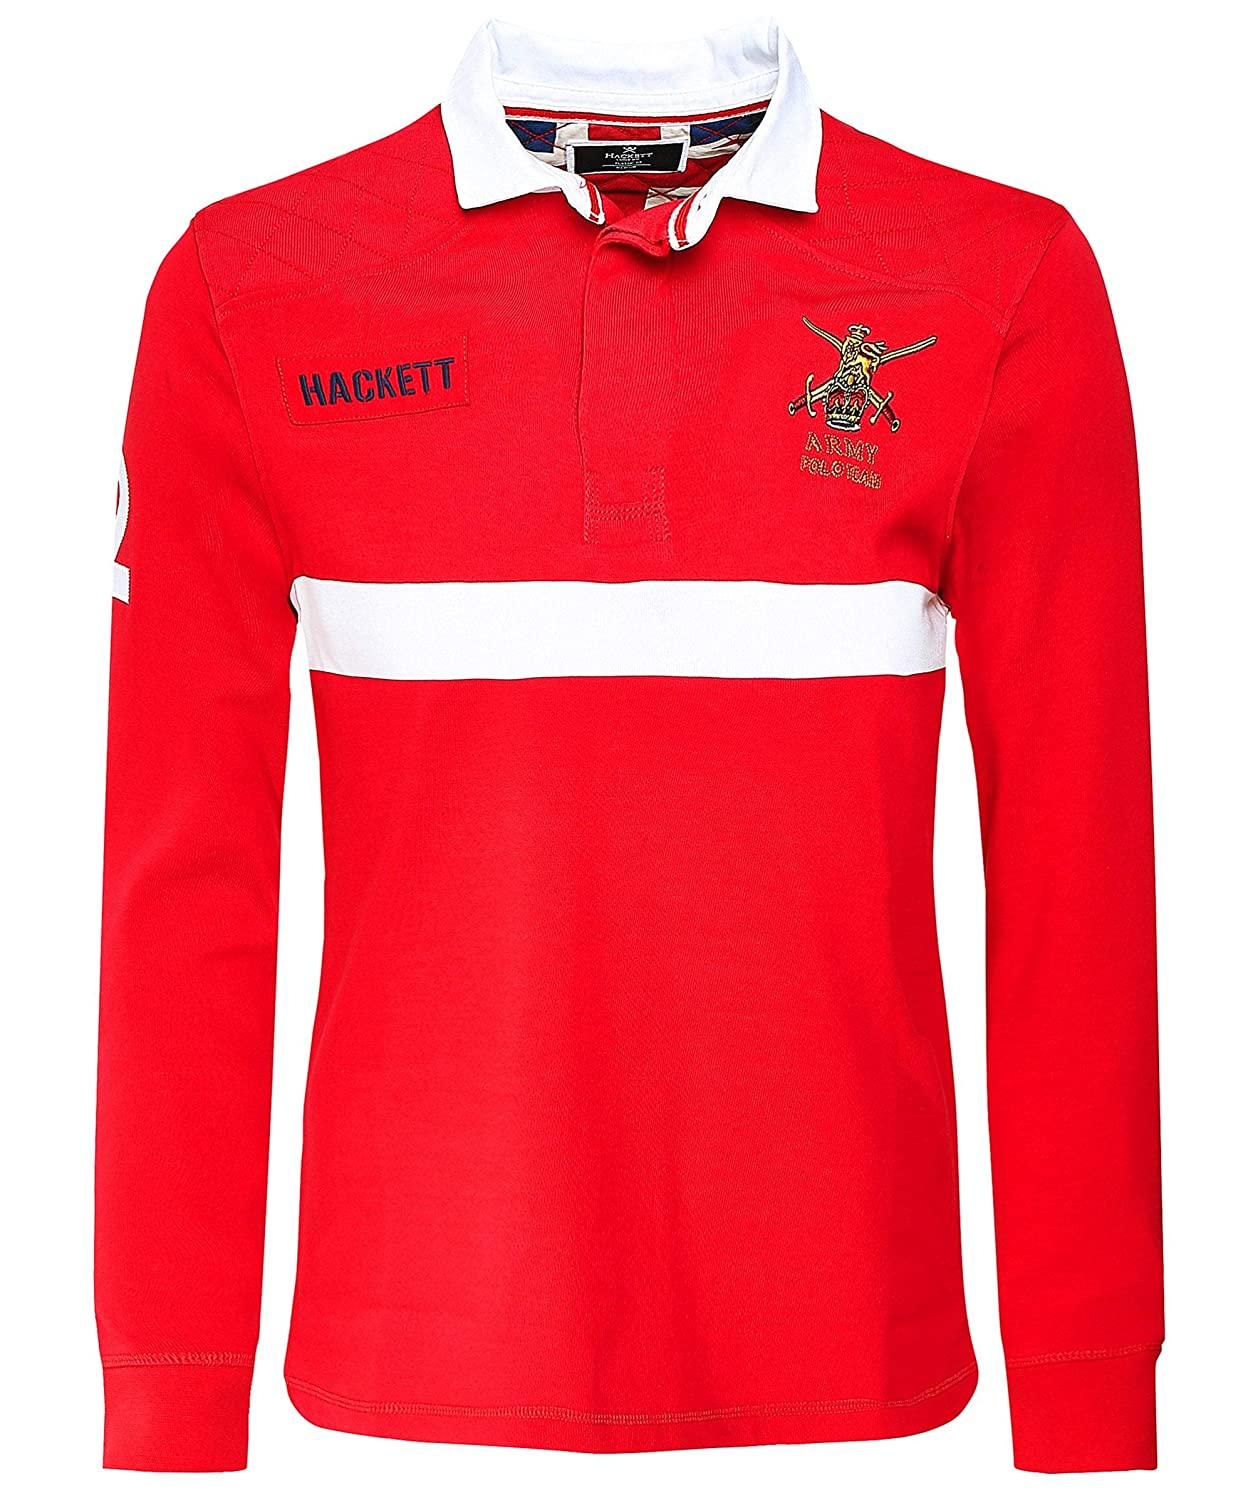 Hackett Mens Classic Fit Long Sleeve Army Polo Shirt XL Red